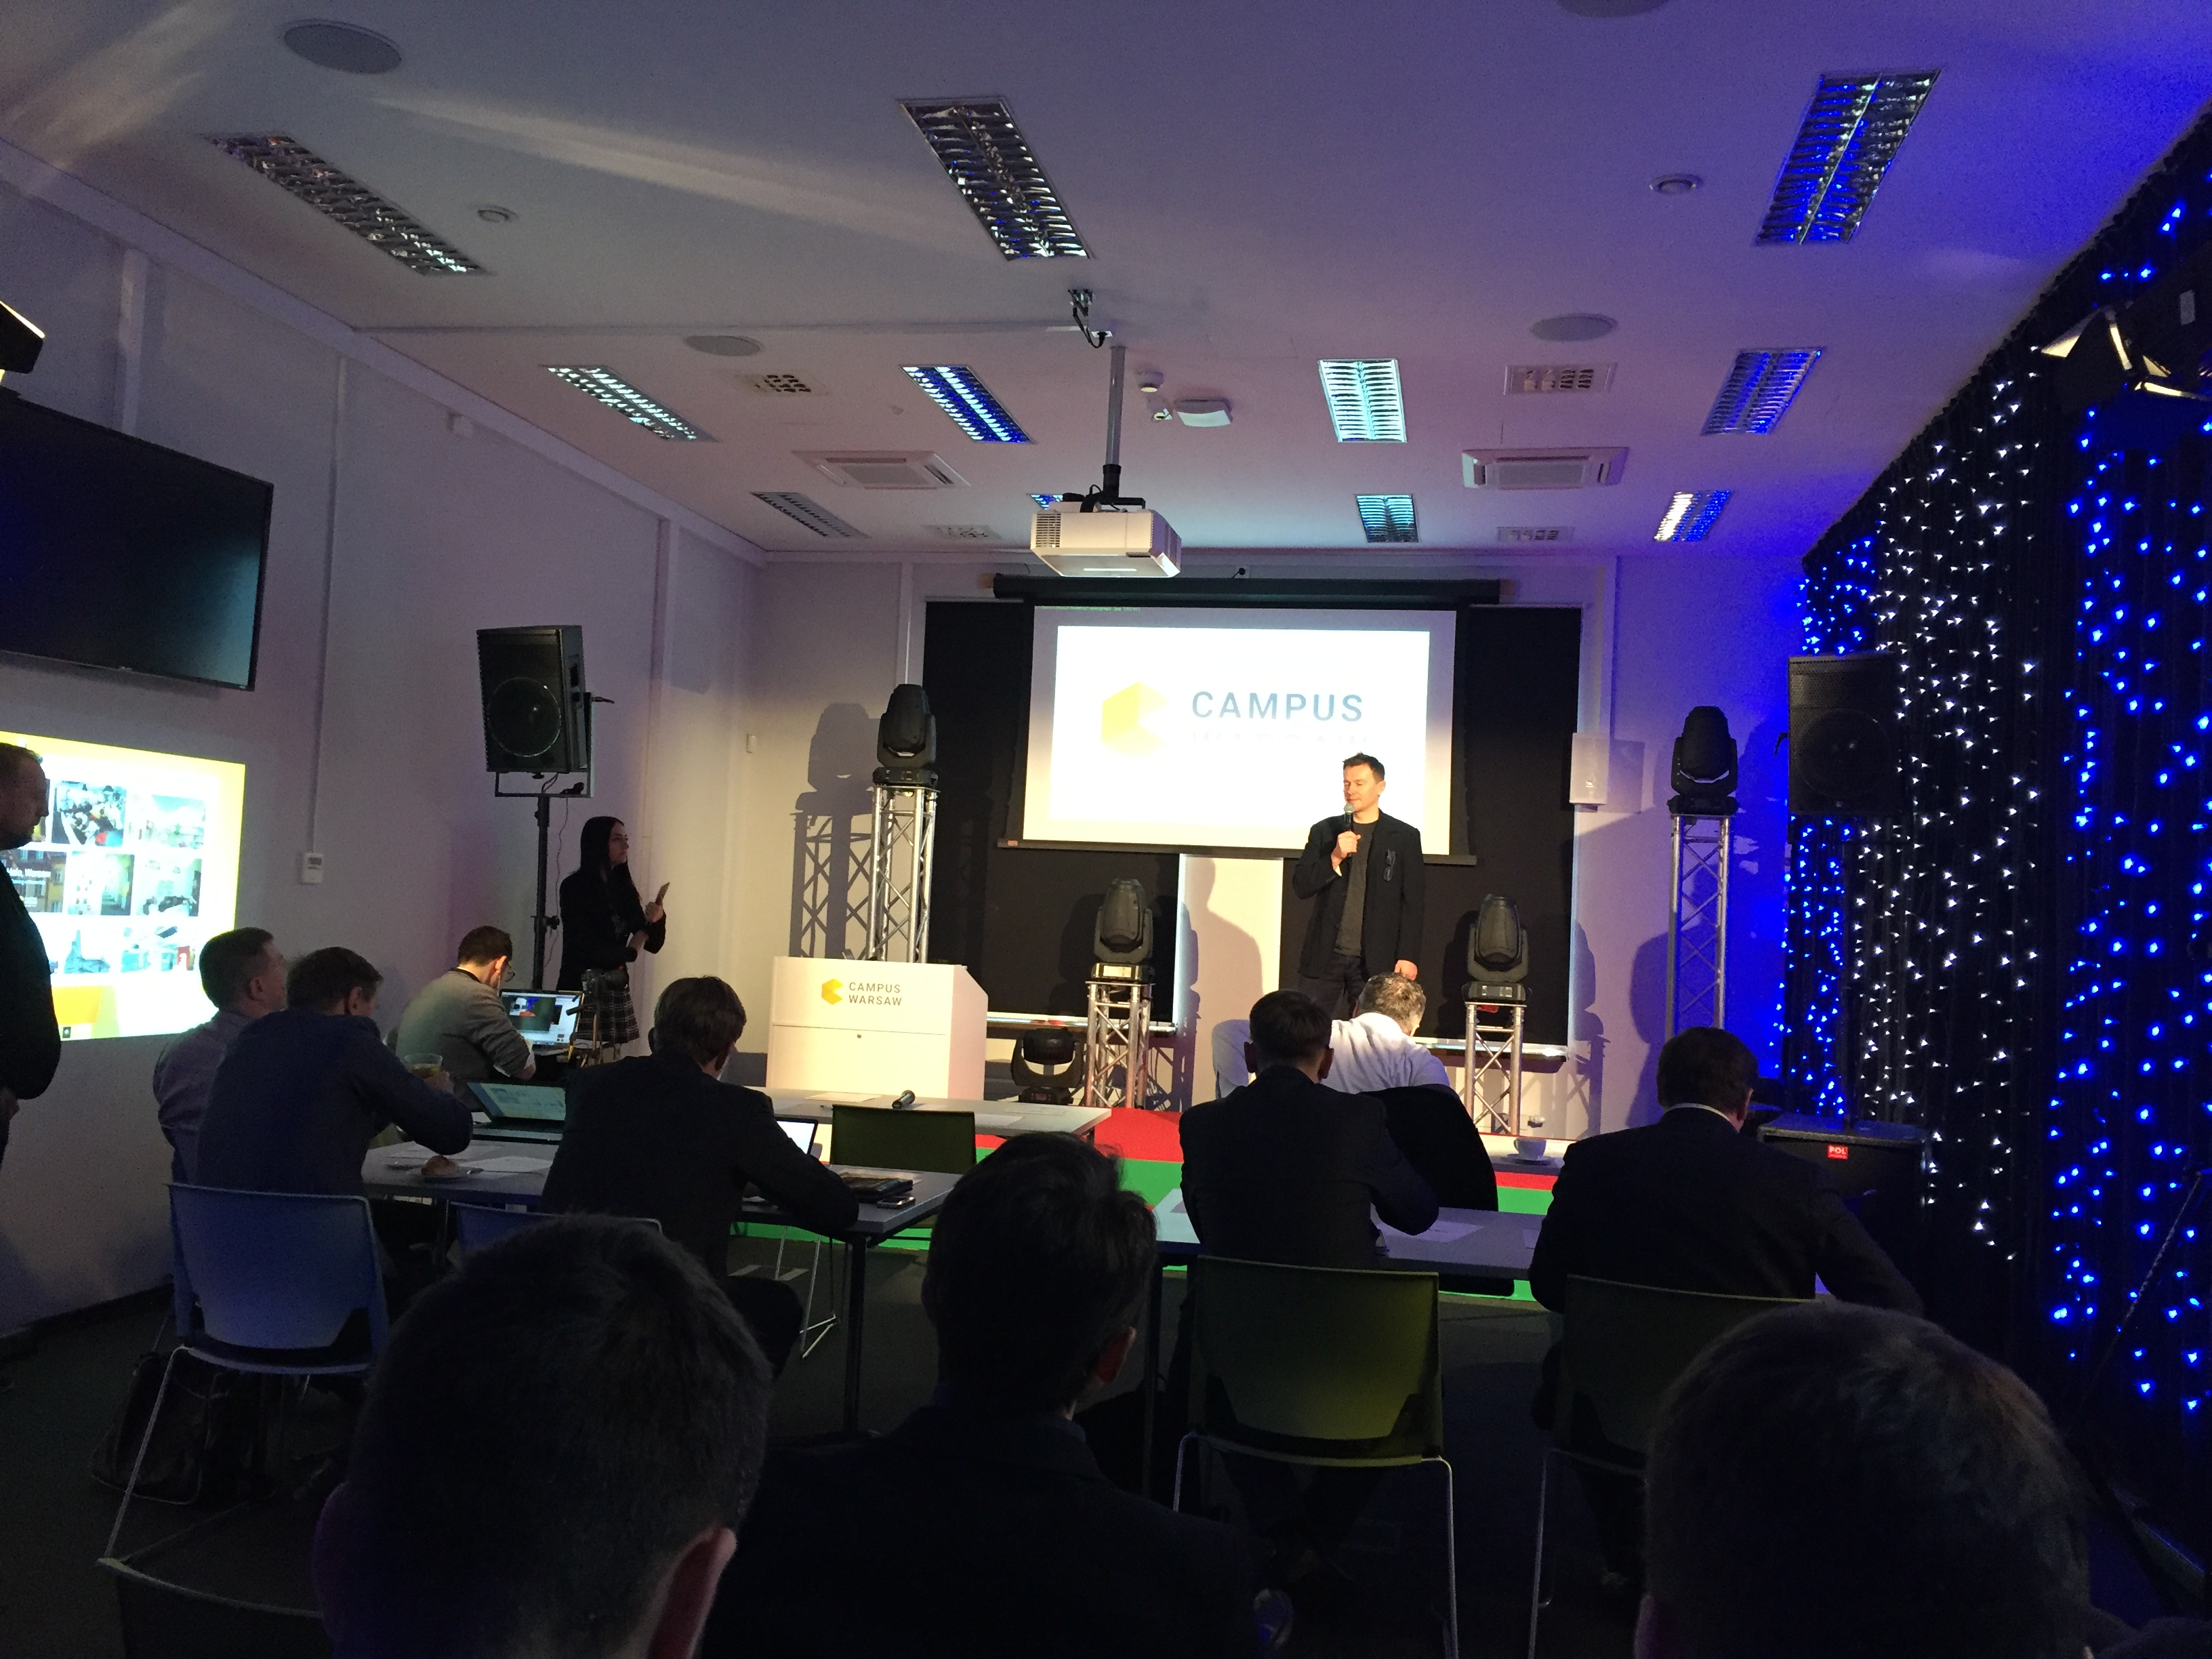 Google CEE Exchange Campus, Zdroj: Fimtoro